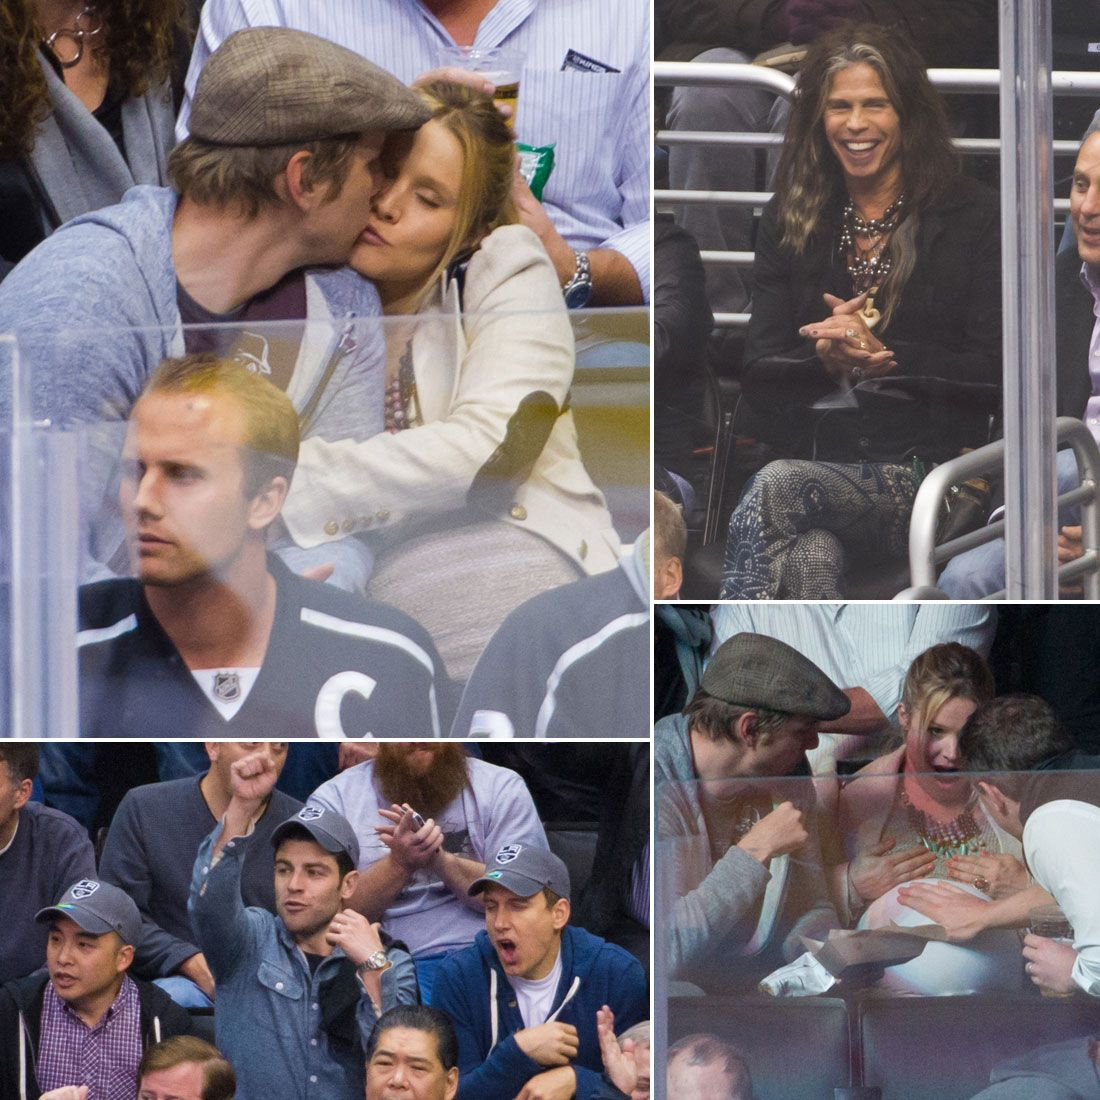 Kristen and Dax Show PDA and Hang With Pals at a Hockey Game | See all their cute pics from the game